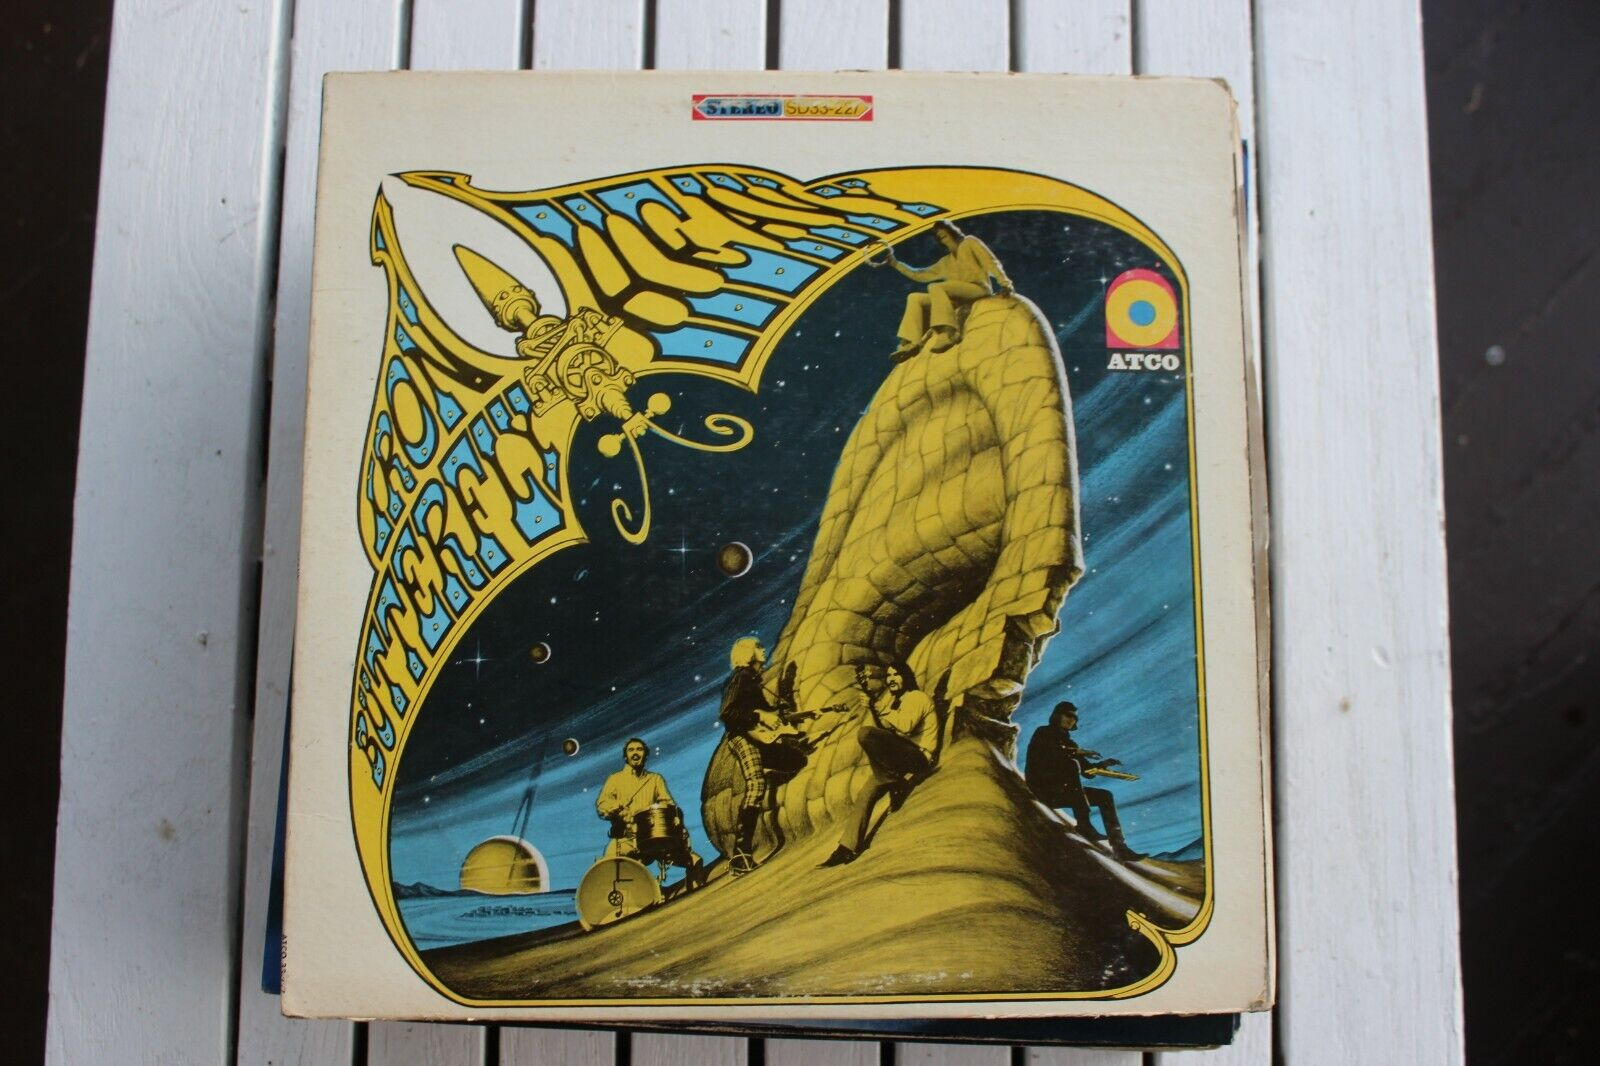 LP Record - Iron Butterfly - Heavy - SD33-227 - $8.99